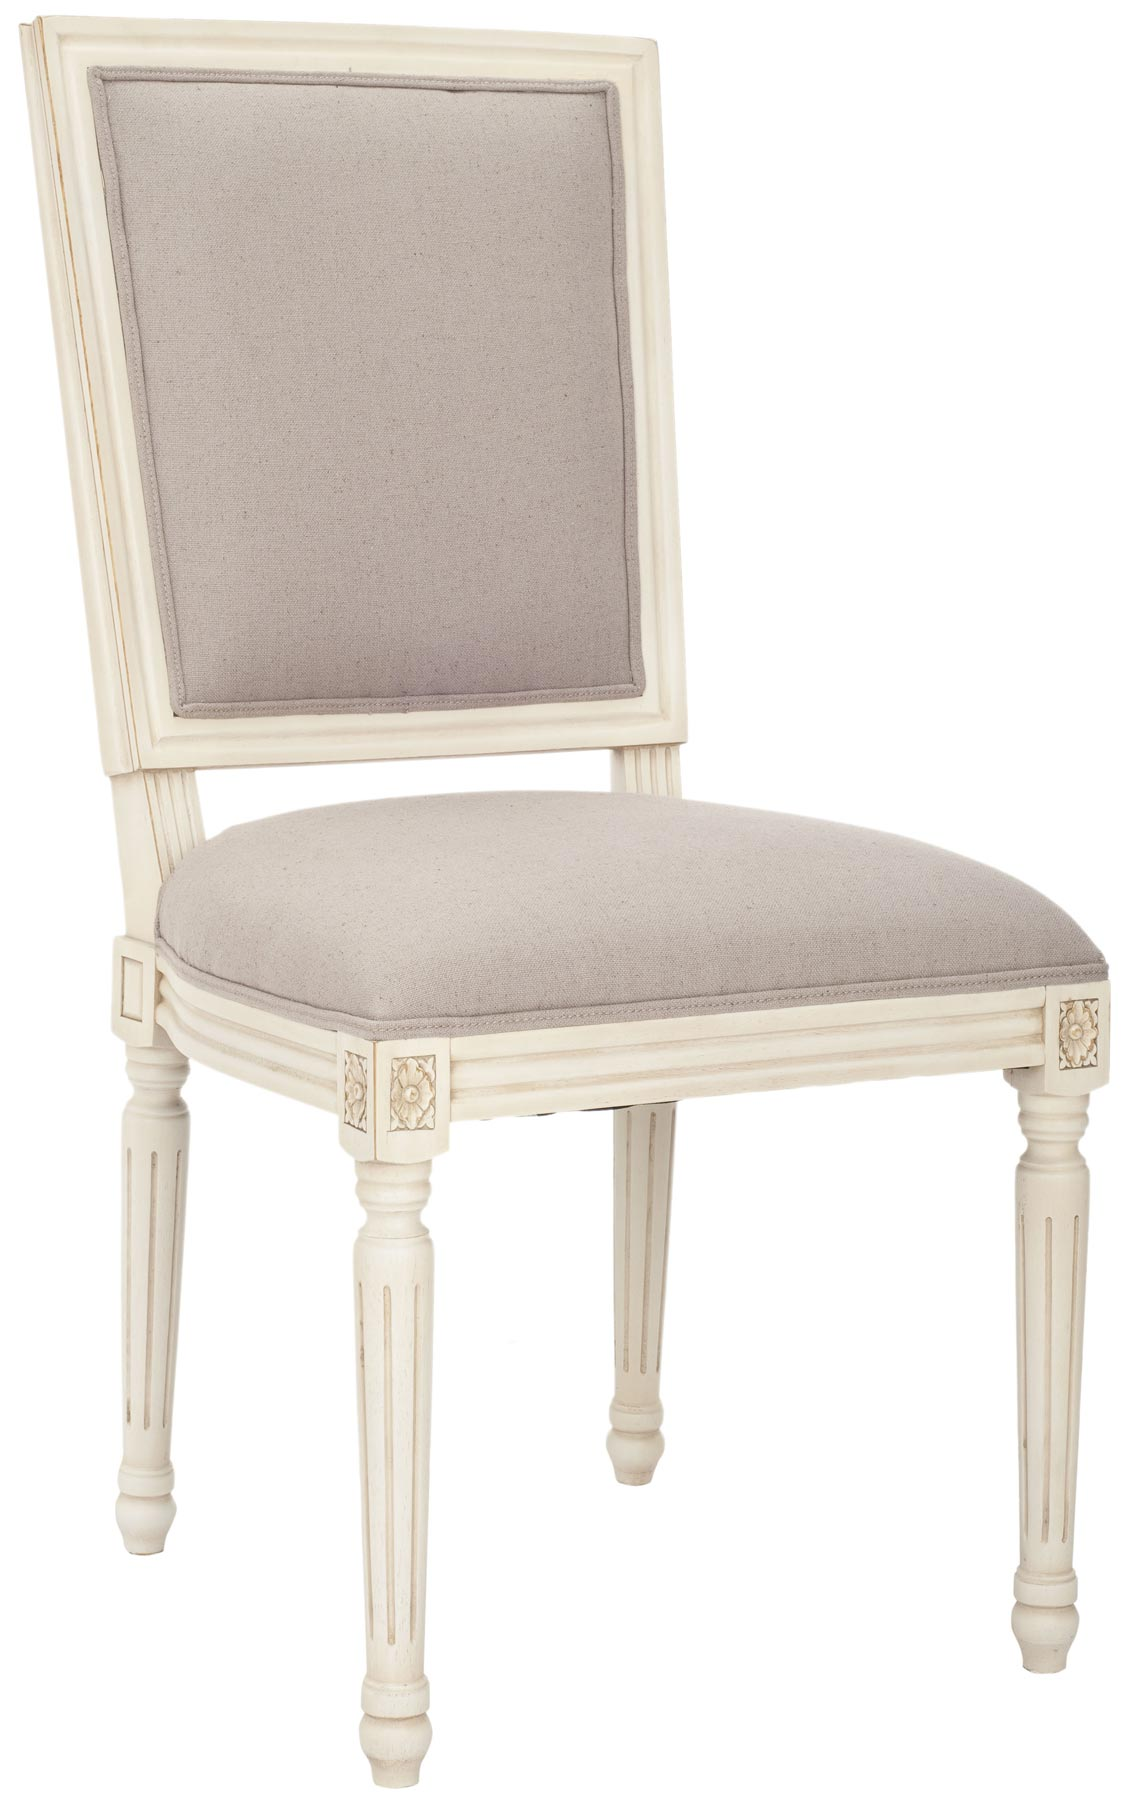 Safavieh MCR4516C ASHTON SIDE CHAIR TAUPE SET OF TWO $801 00